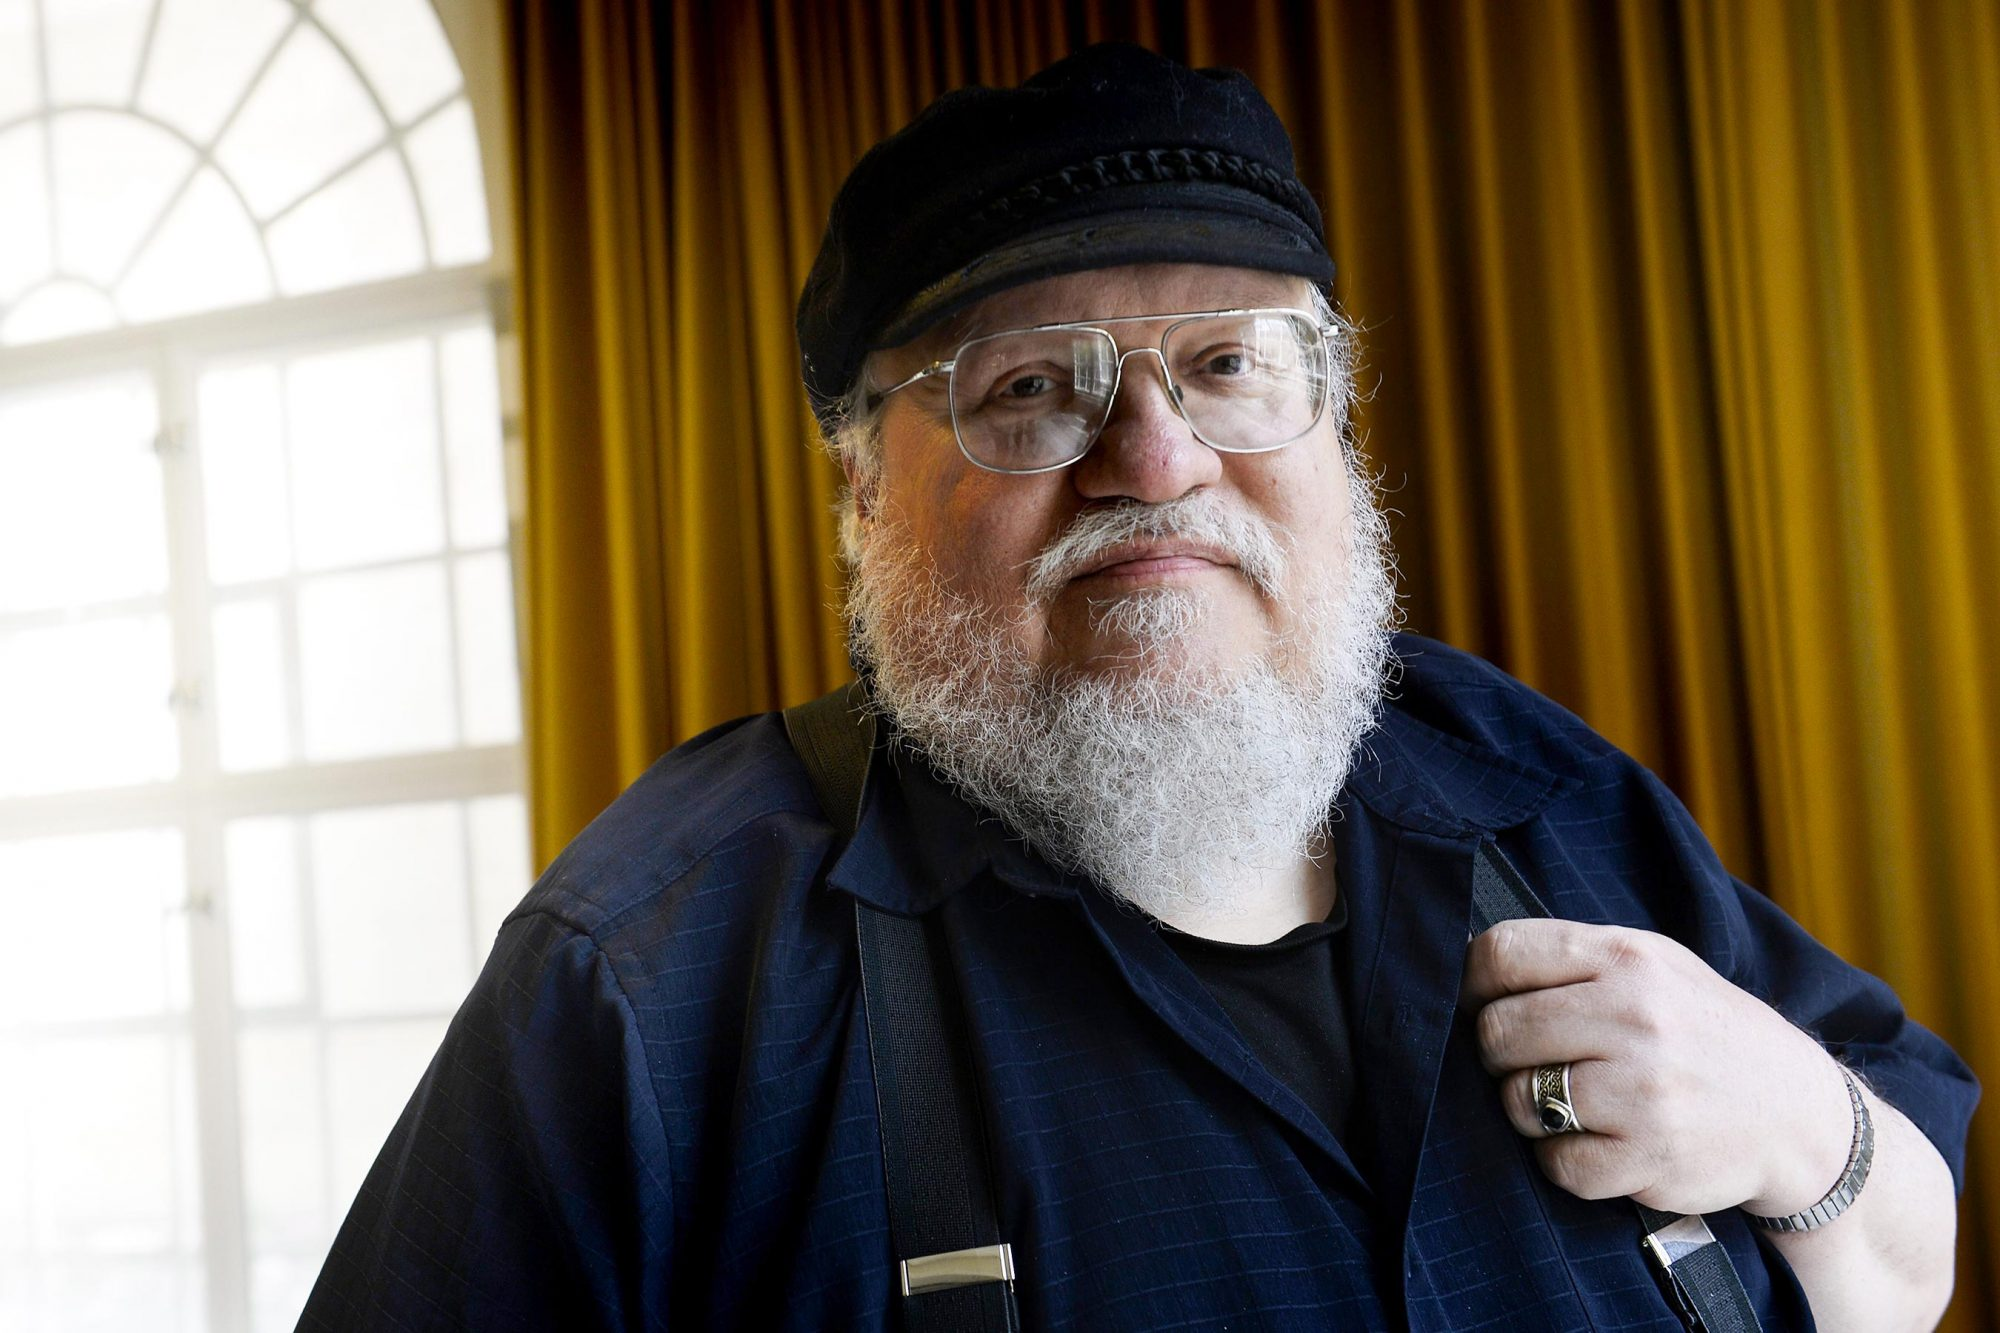 George R.R Martin photo shoot in Stockholm, Sweden - 23 Jun 2015